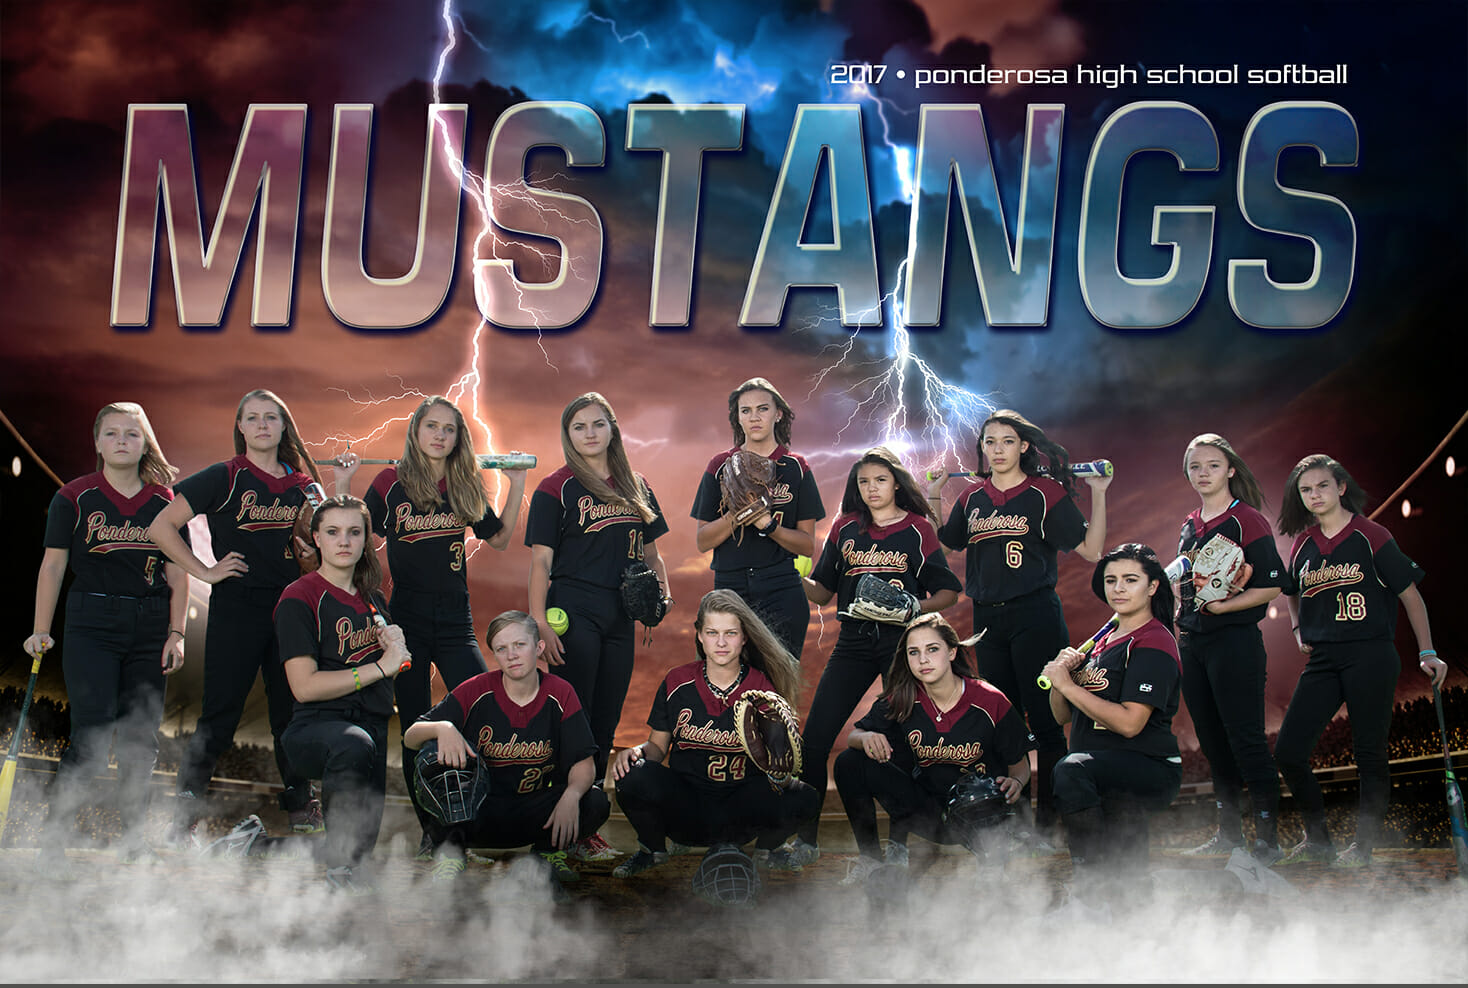 Ponderosa High School Softball team poster